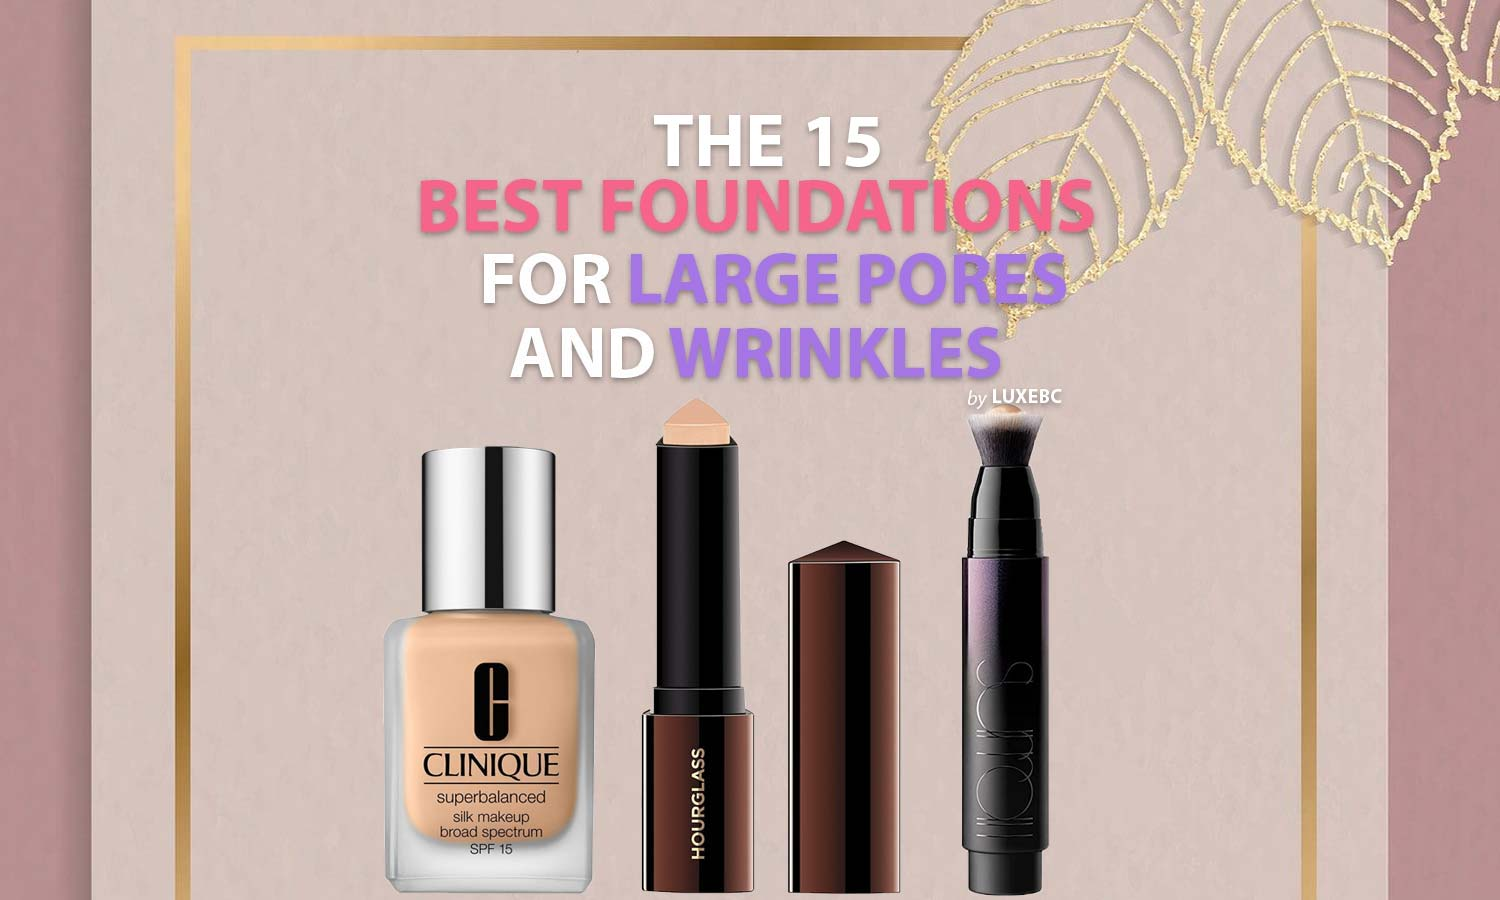 Top rated foundations for large pores and wrinkles